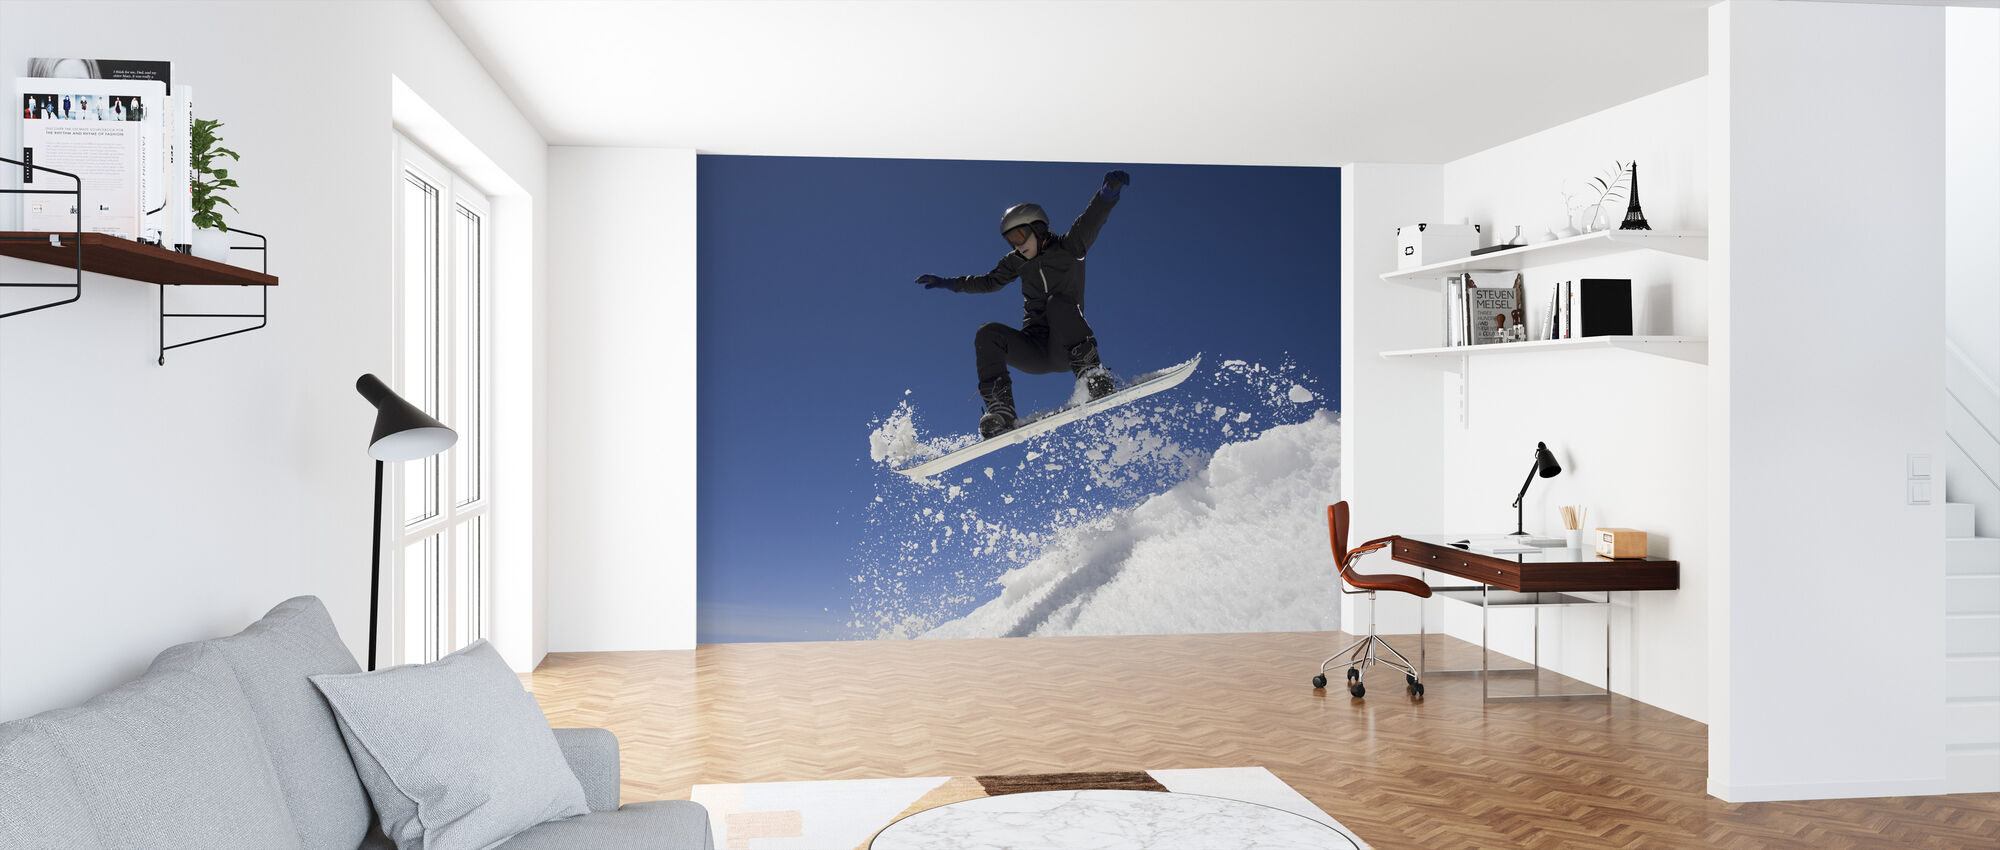 Snowboarder Jumping through Air - Wallpaper - Office